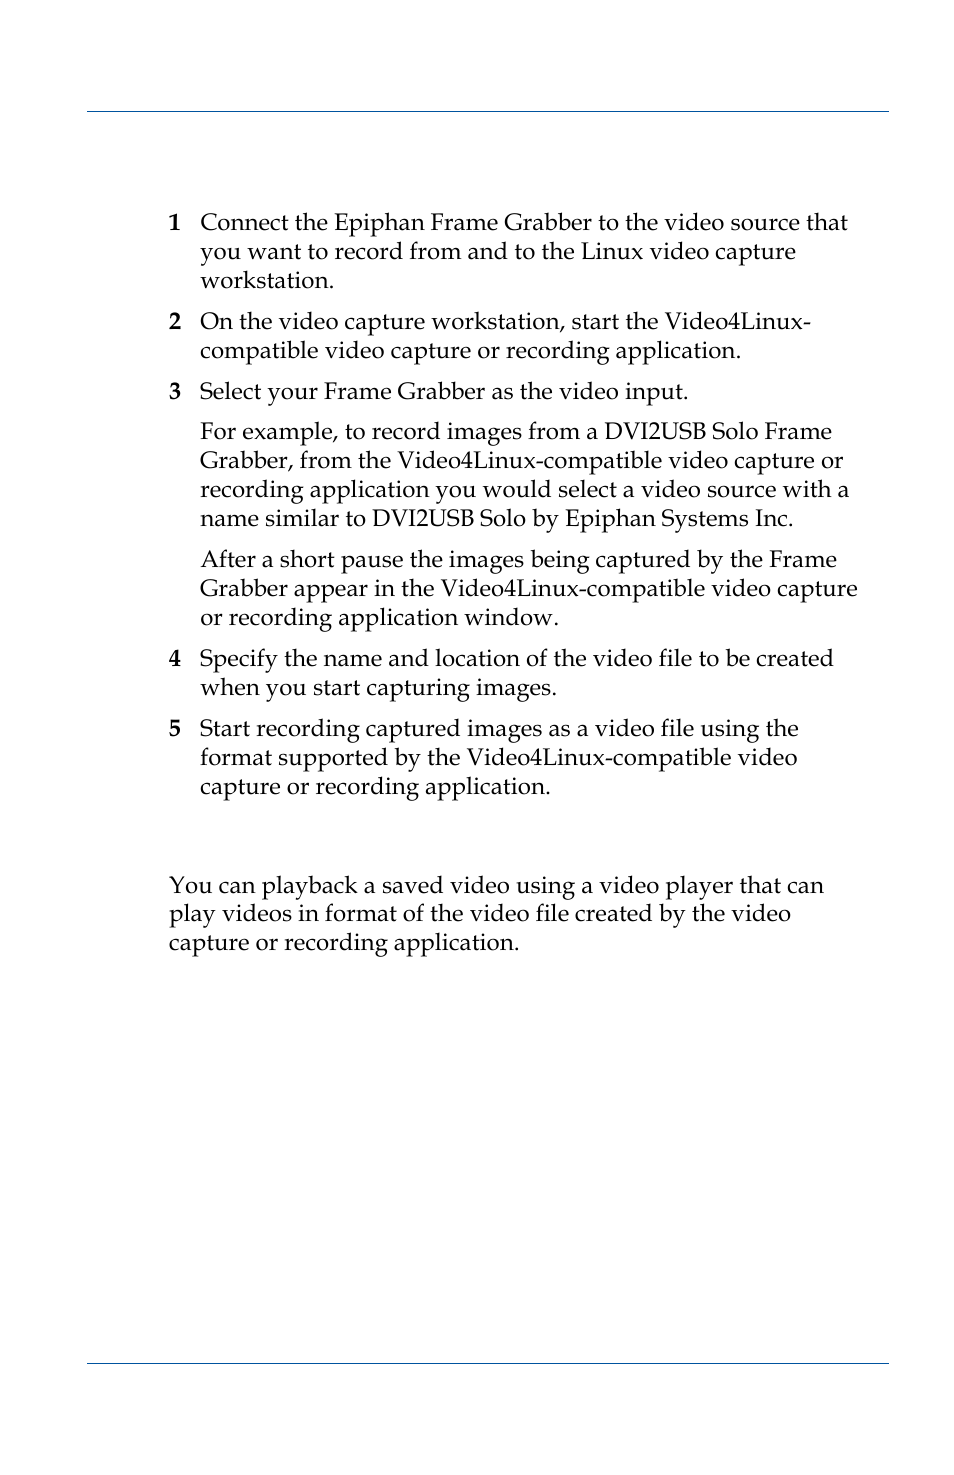 Playing back a video file (linux) | Epiphan VGA2USB Pro User Manual